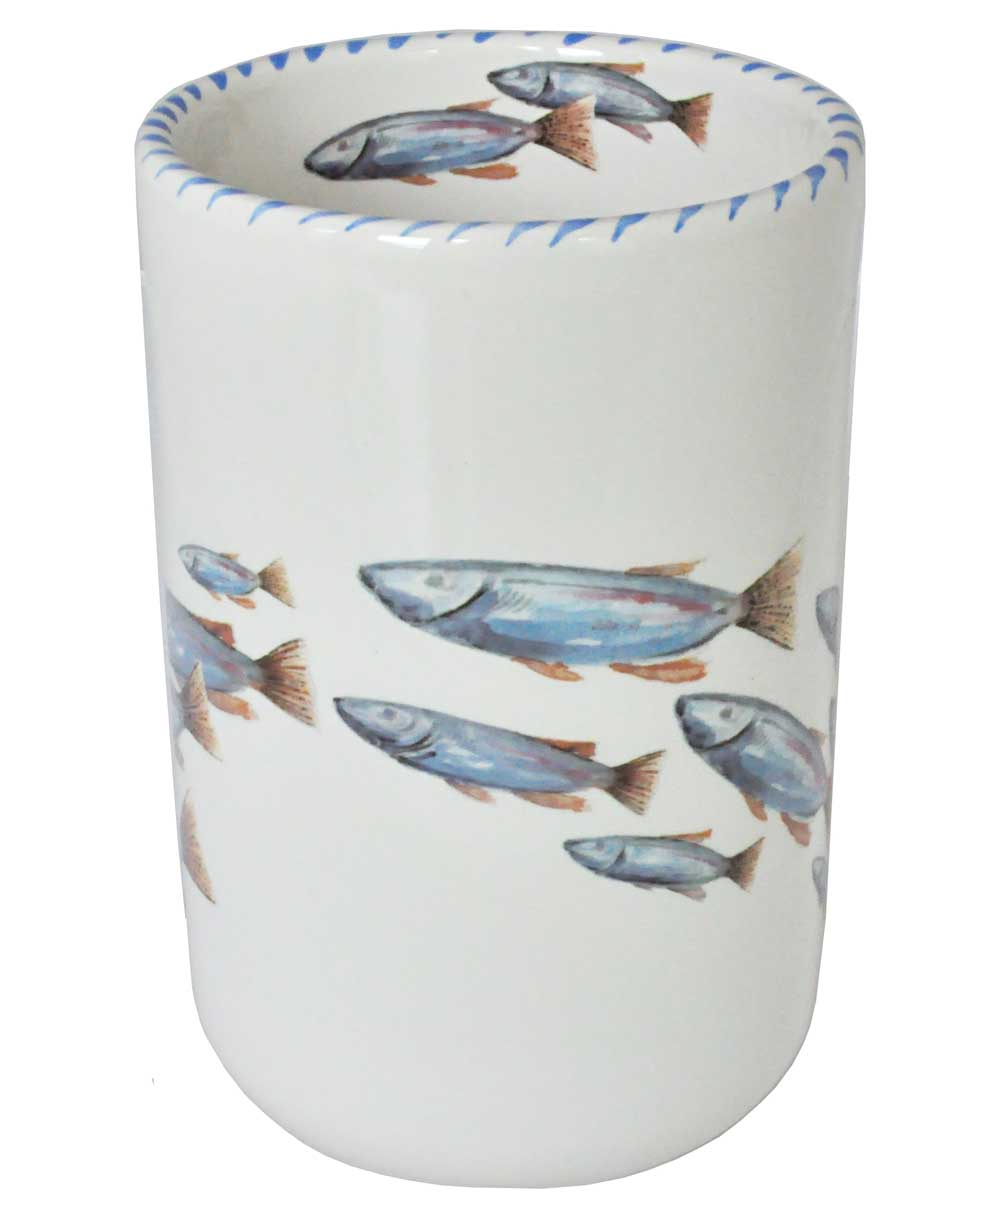 Lake Fish Wine Bottle Holder / Utensil Holder / Vase